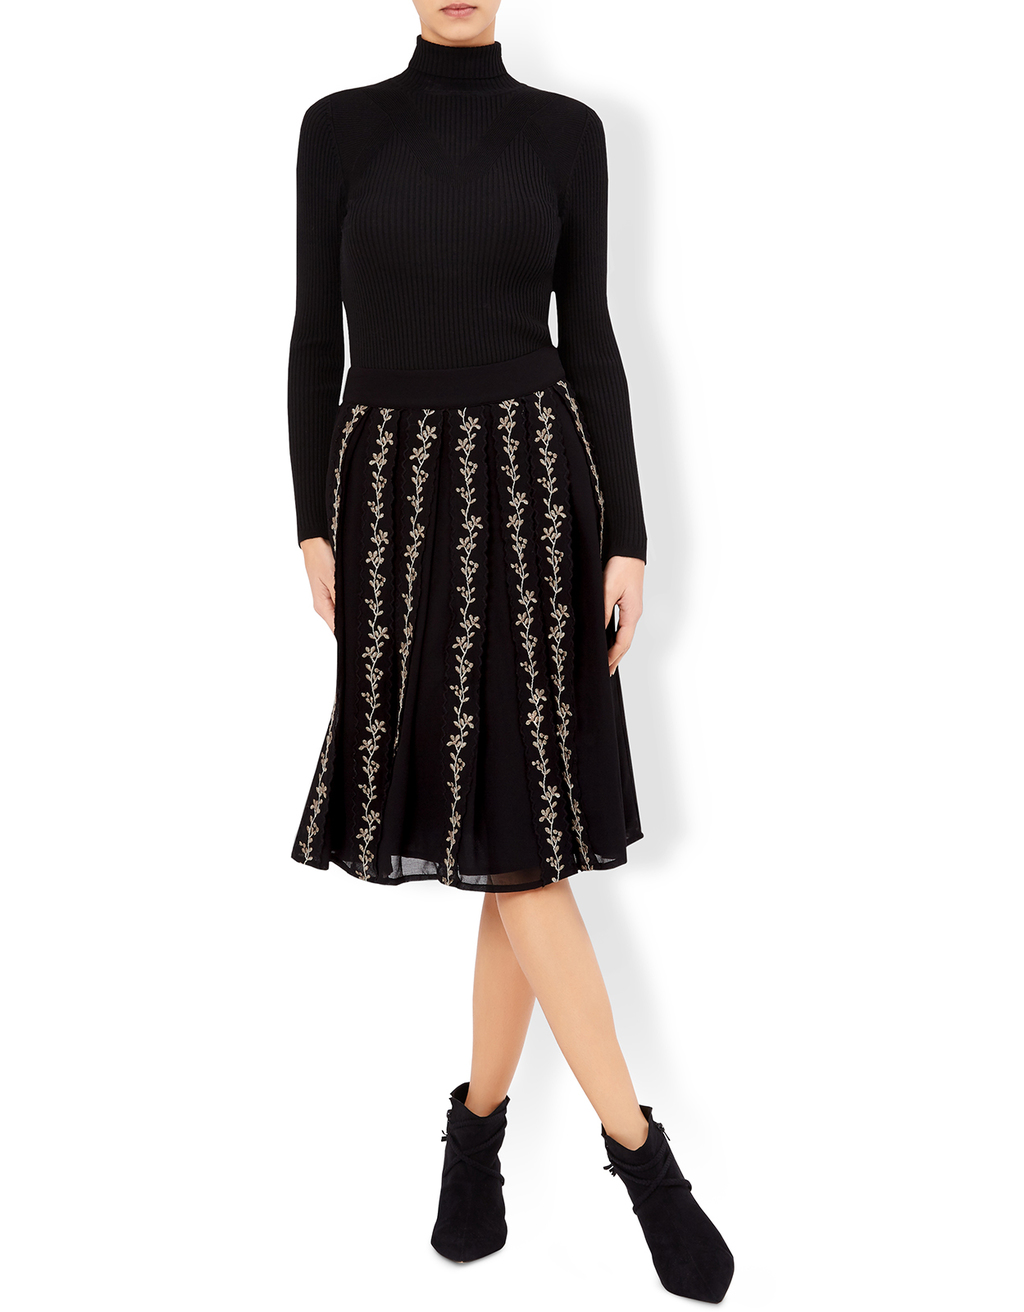 Sinead Short Embroidered Skirt - length: below the knee; pattern: plain; style: full/prom skirt; fit: loose/voluminous; waist: high rise; predominant colour: black; fibres: polyester/polyamide - 100%; occasions: occasion, creative work; hip detail: subtle/flattering hip detail; texture group: sheer fabrics/chiffon/organza etc.; pattern type: fabric; embellishment: embroidered; season: a/w 2016; wardrobe: highlight